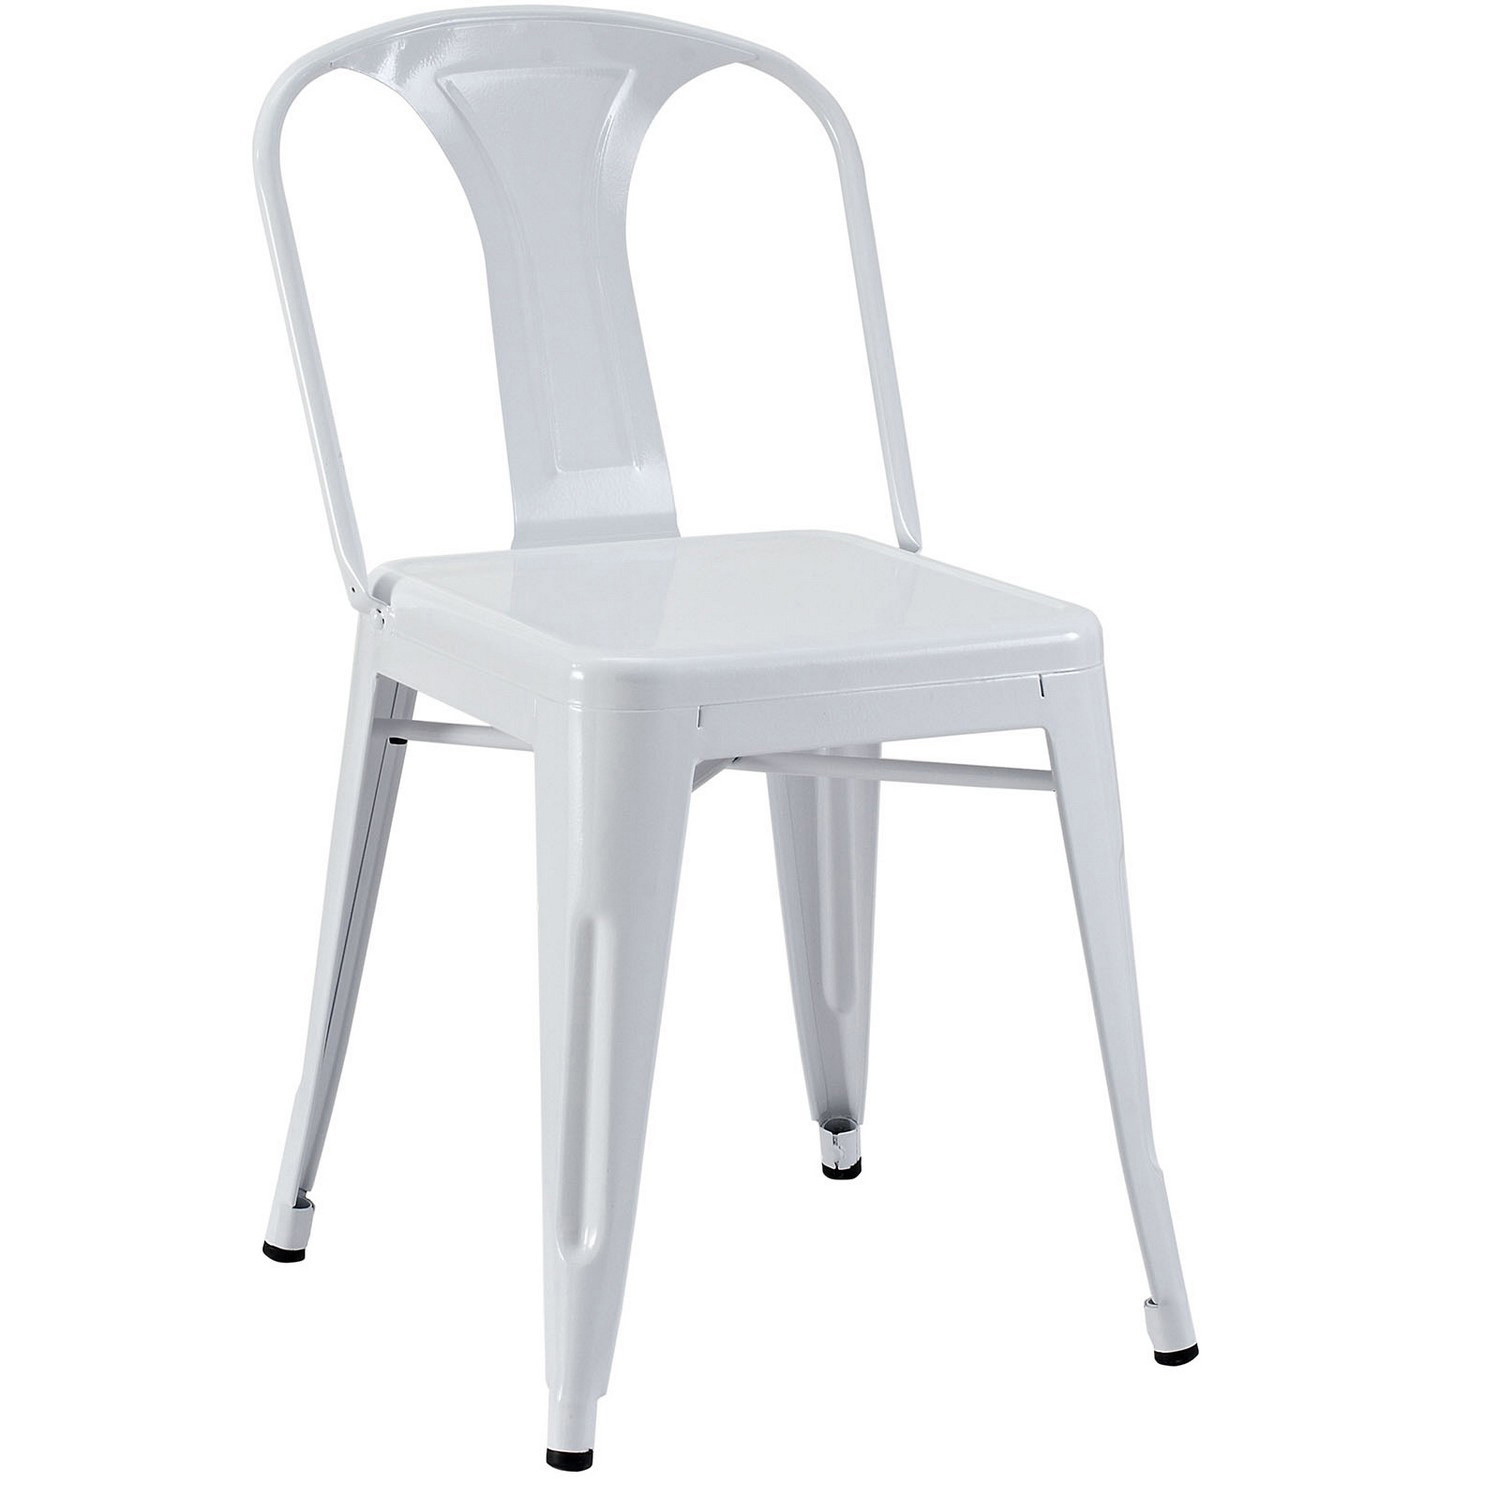 Modway Promenade Dining Side Chair - White